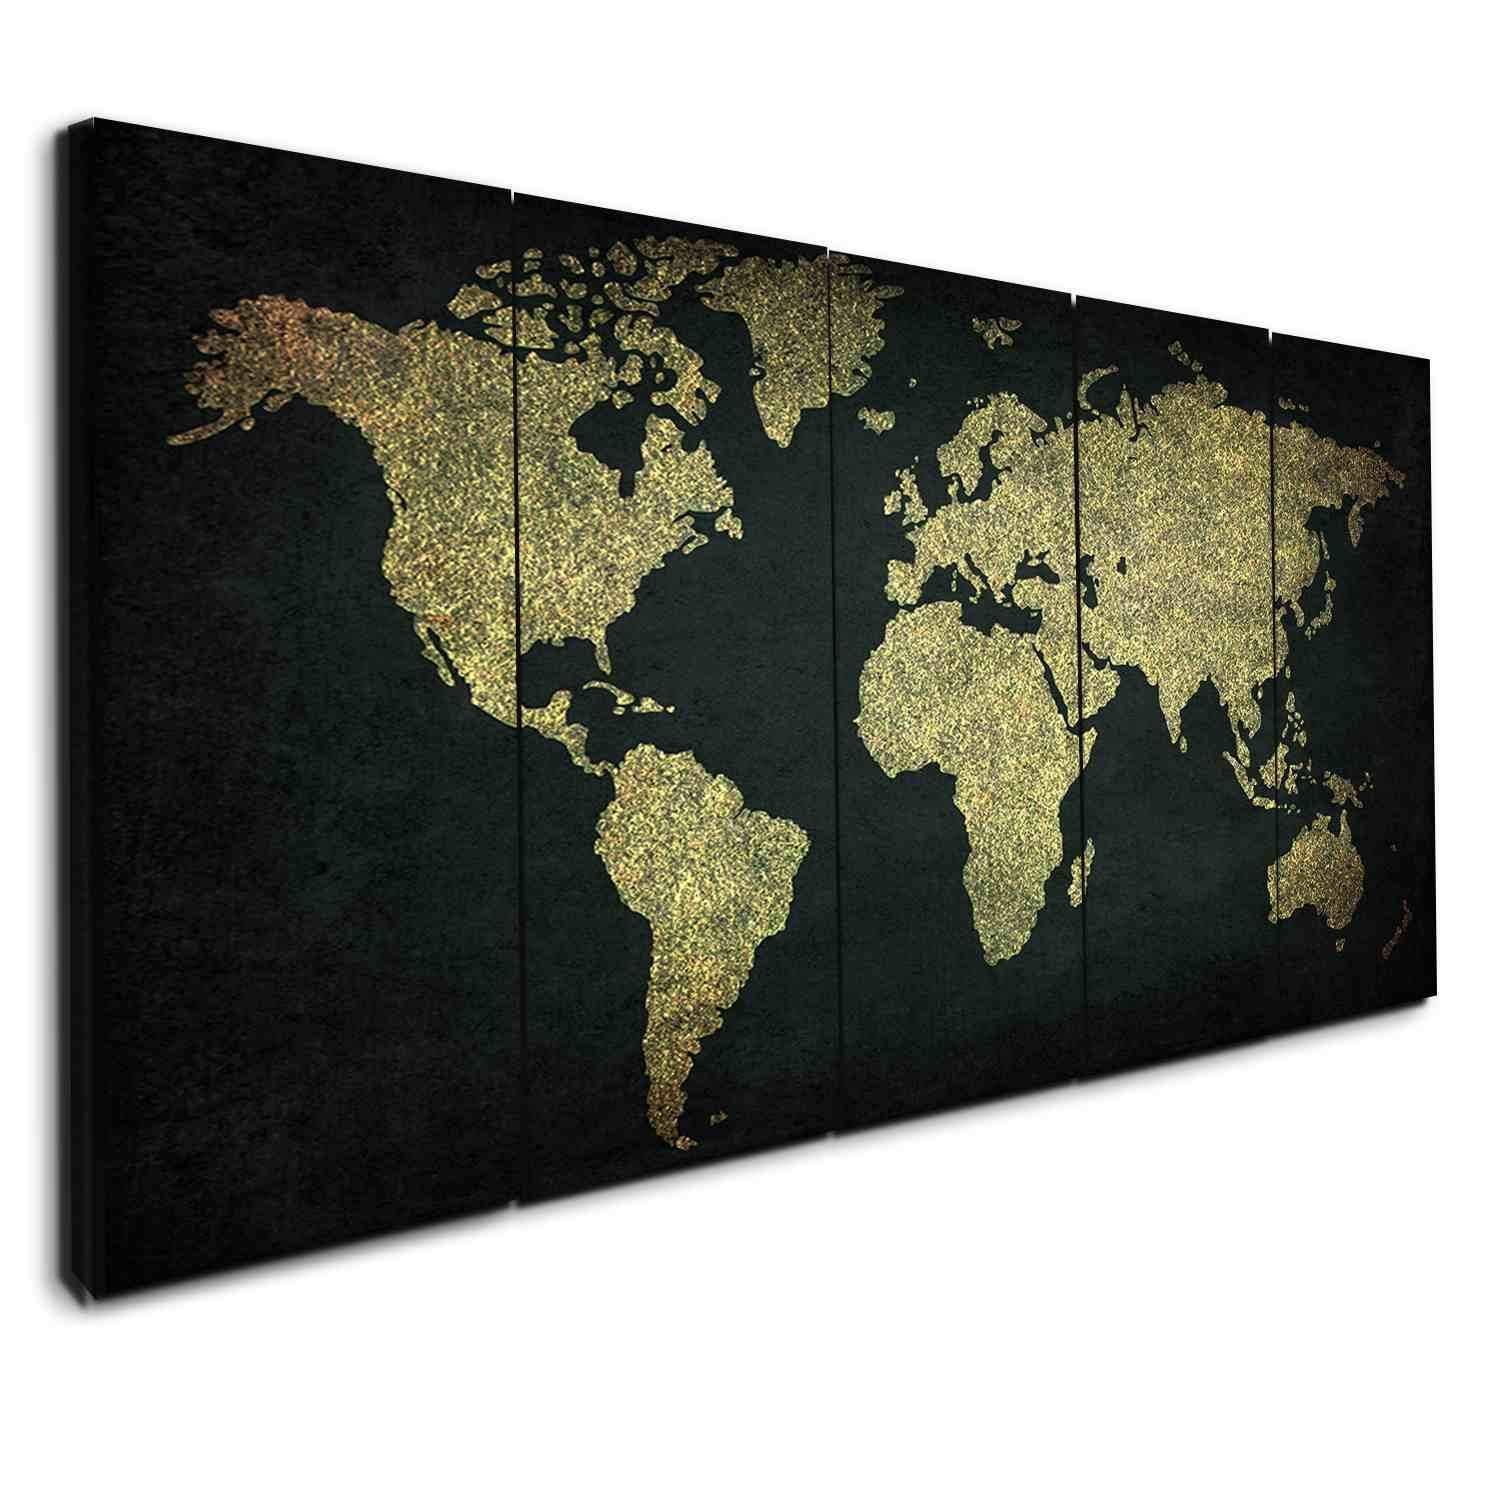 Green and gold world map canvases panel wall art and panel walls green and gold world map gumiabroncs Image collections